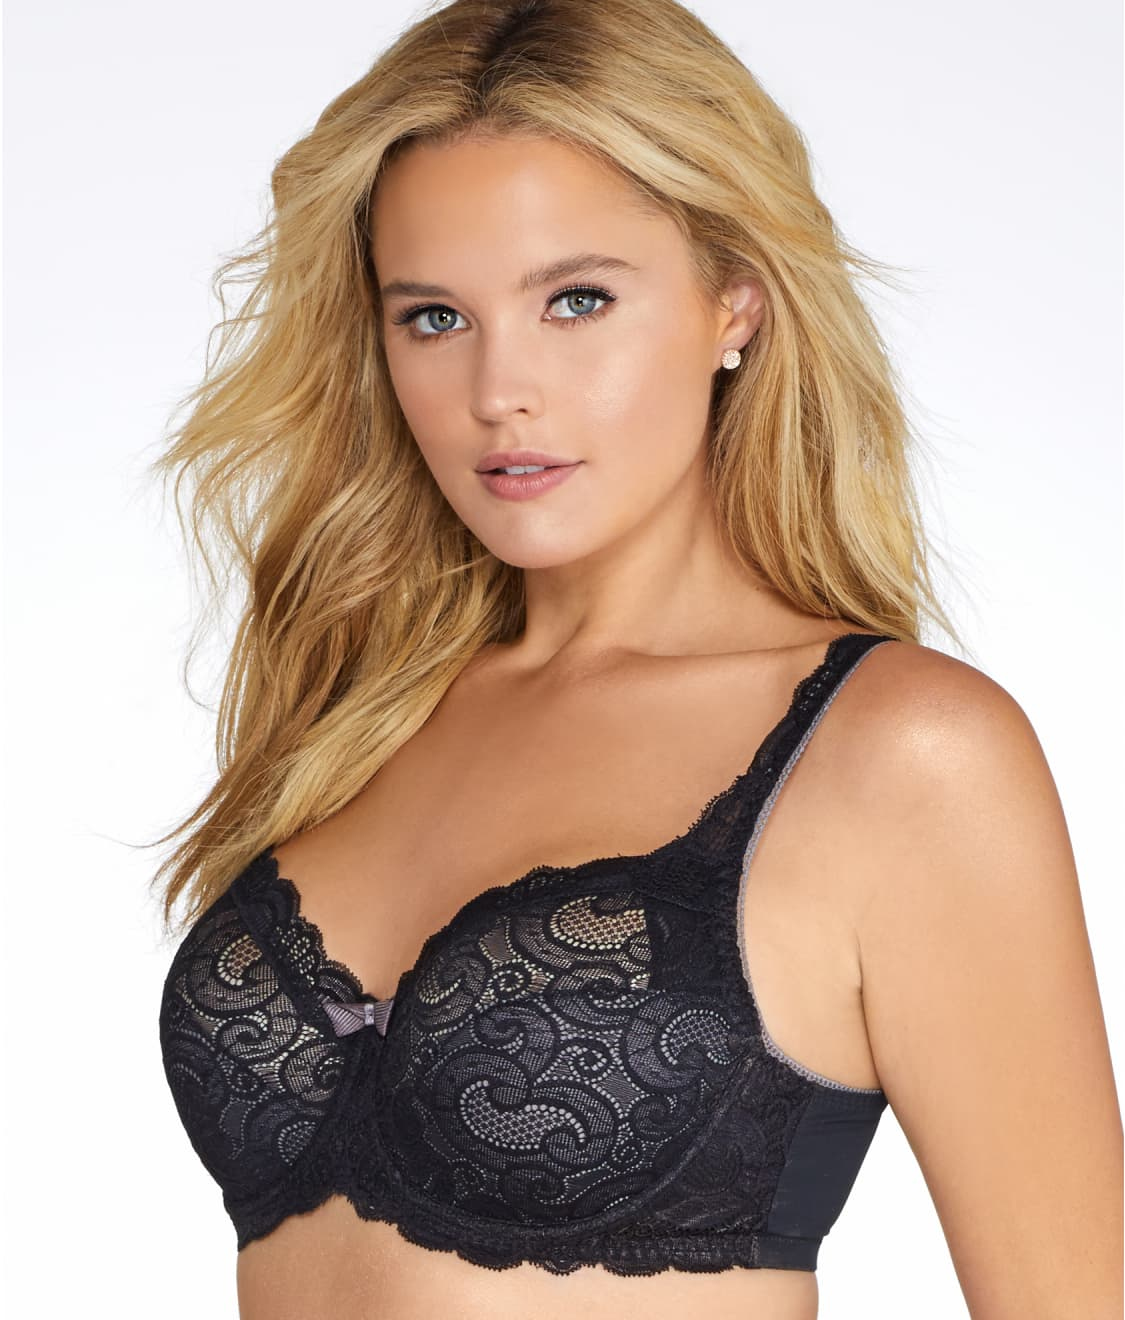 d3b3f2c3ce Playtex Love My Curves Lace And Lift Bra